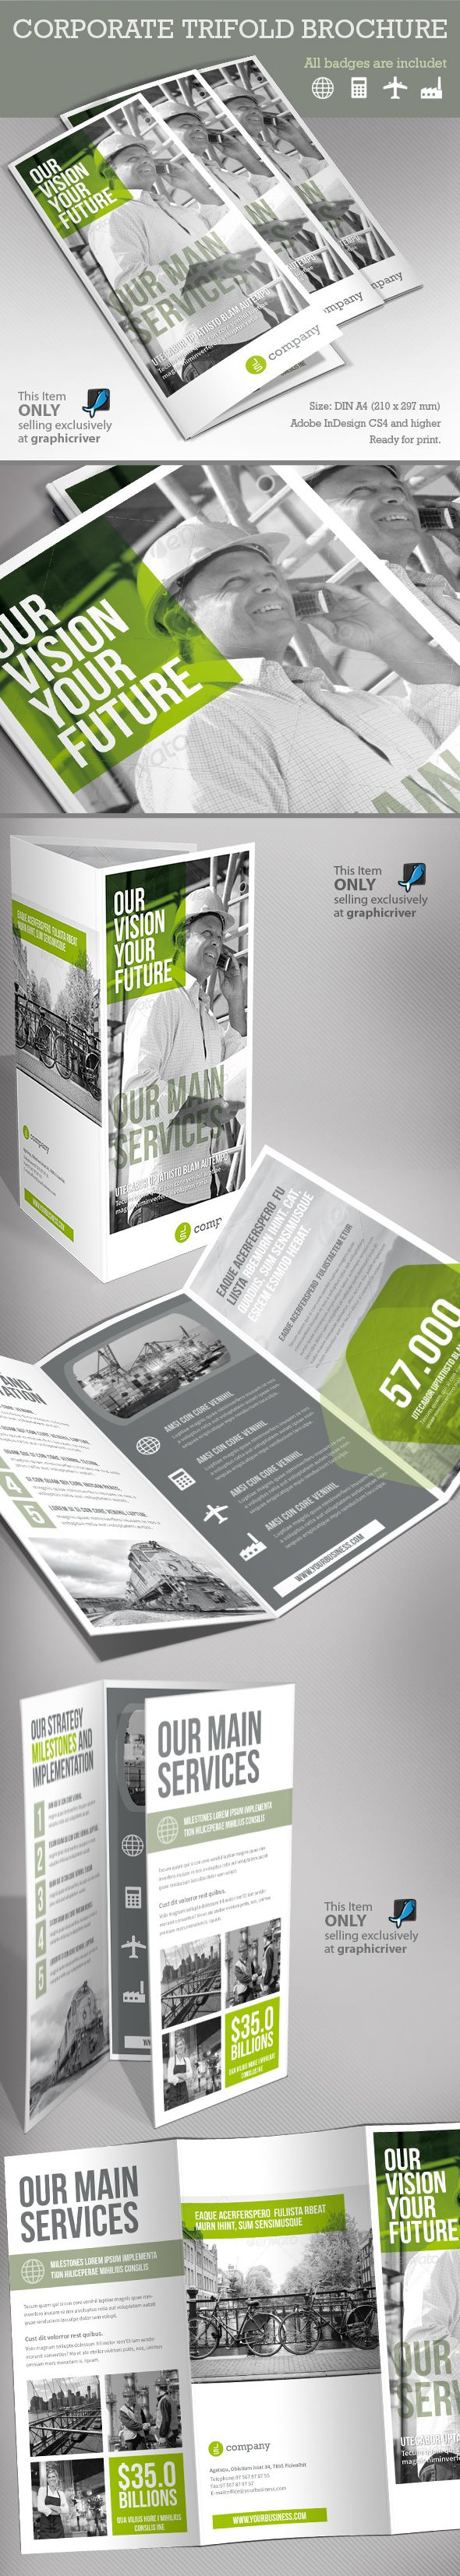 Corporate Tri-fold Brochure on Behance